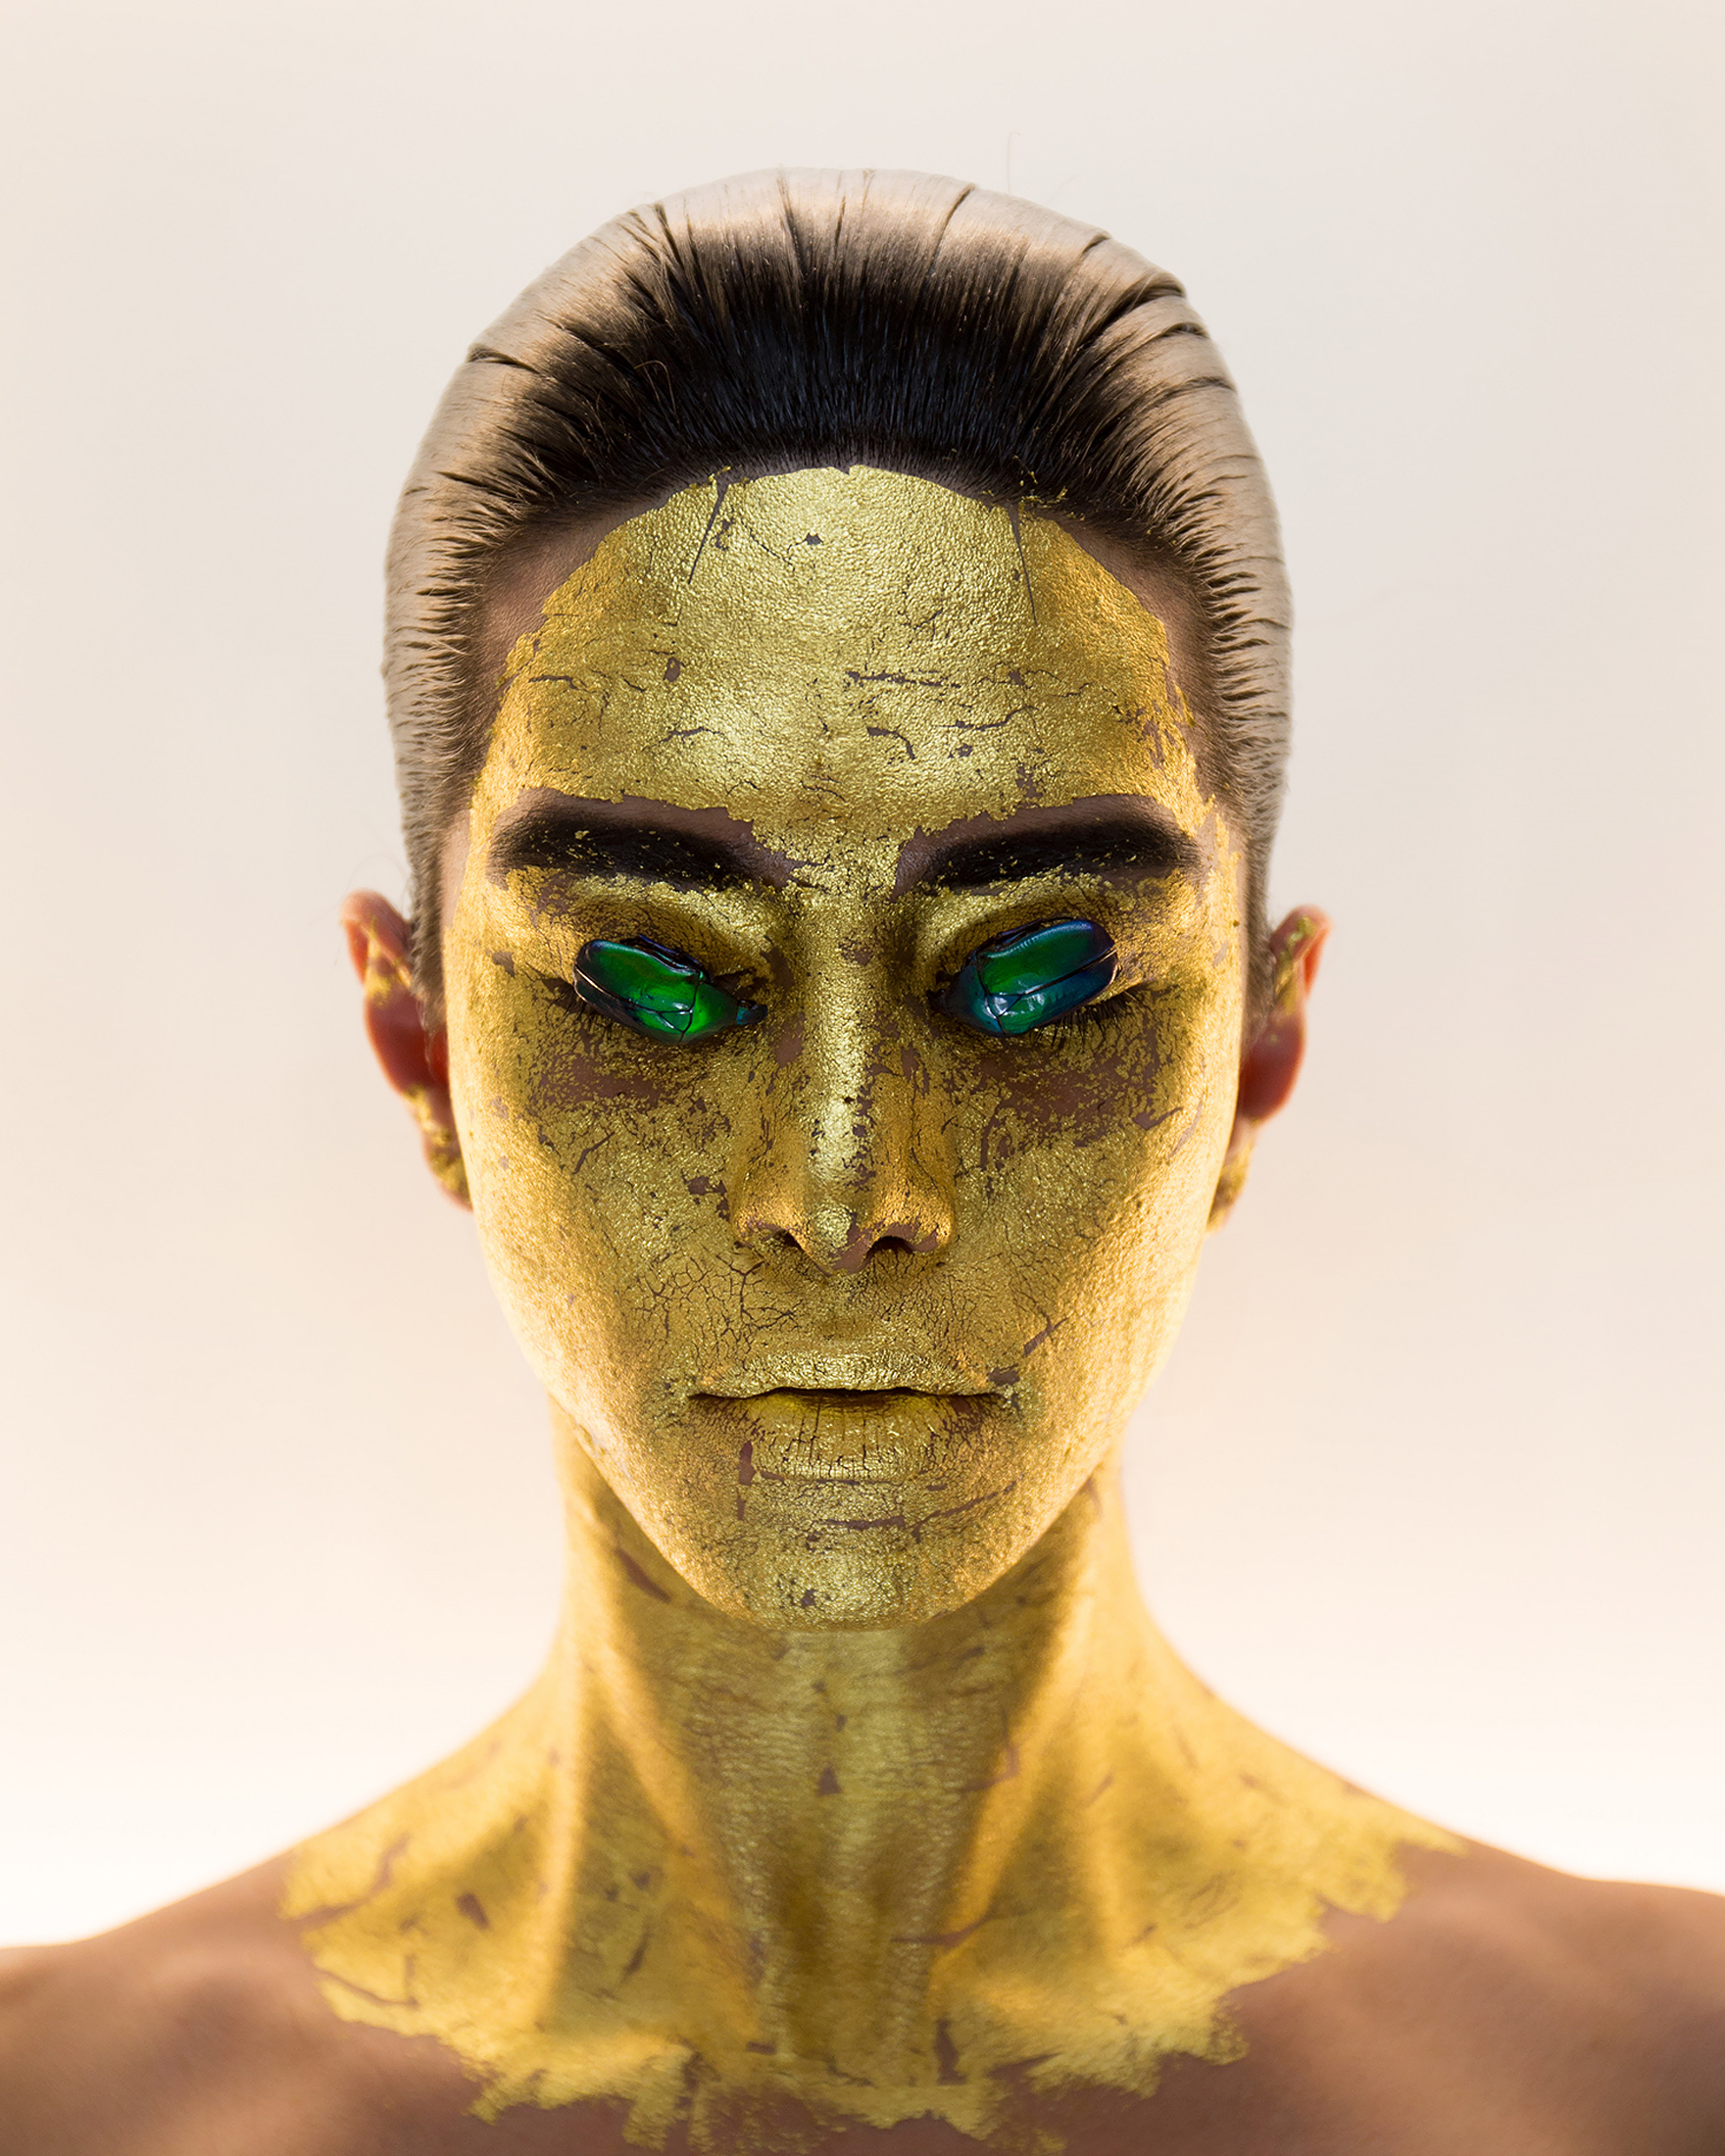 Masking, 24K Gold Mask, p.46, (c) Martine Gutierrez; Courtesy of the artist and RYAN LEE Gallery, New York.